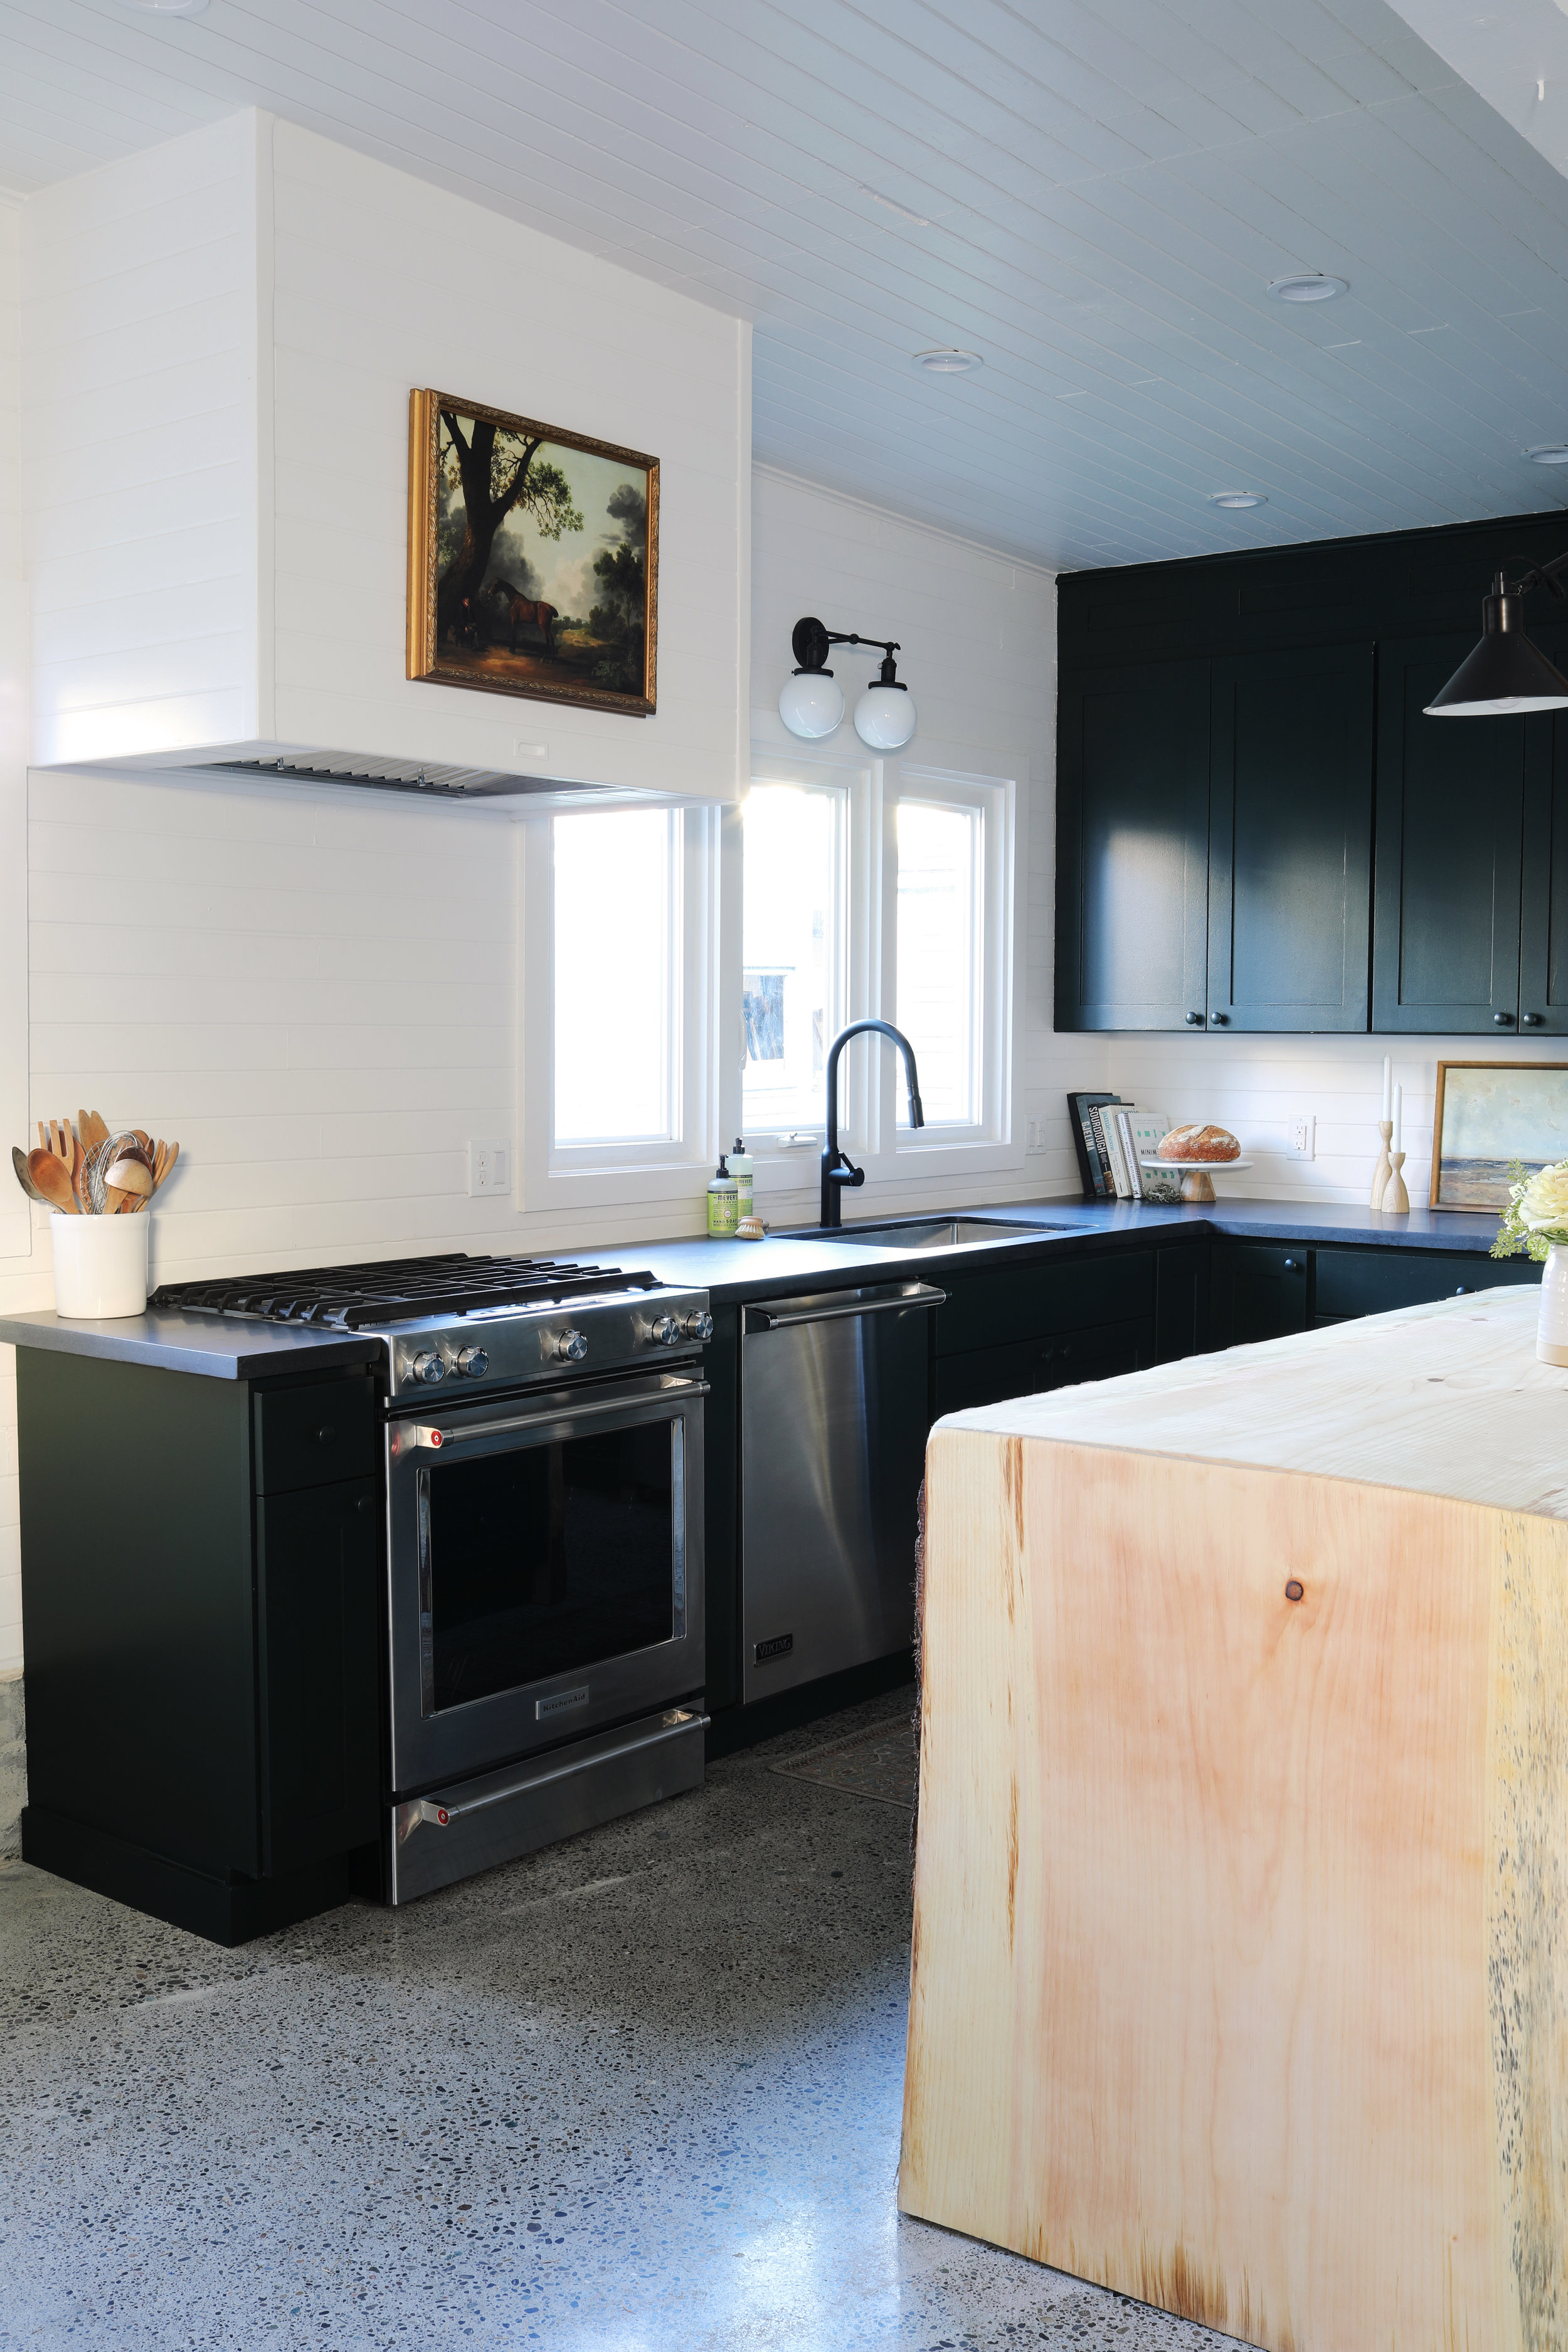 The Grit and Polish - Tacoma Kitchen Reveal Angle 1.2.jpg